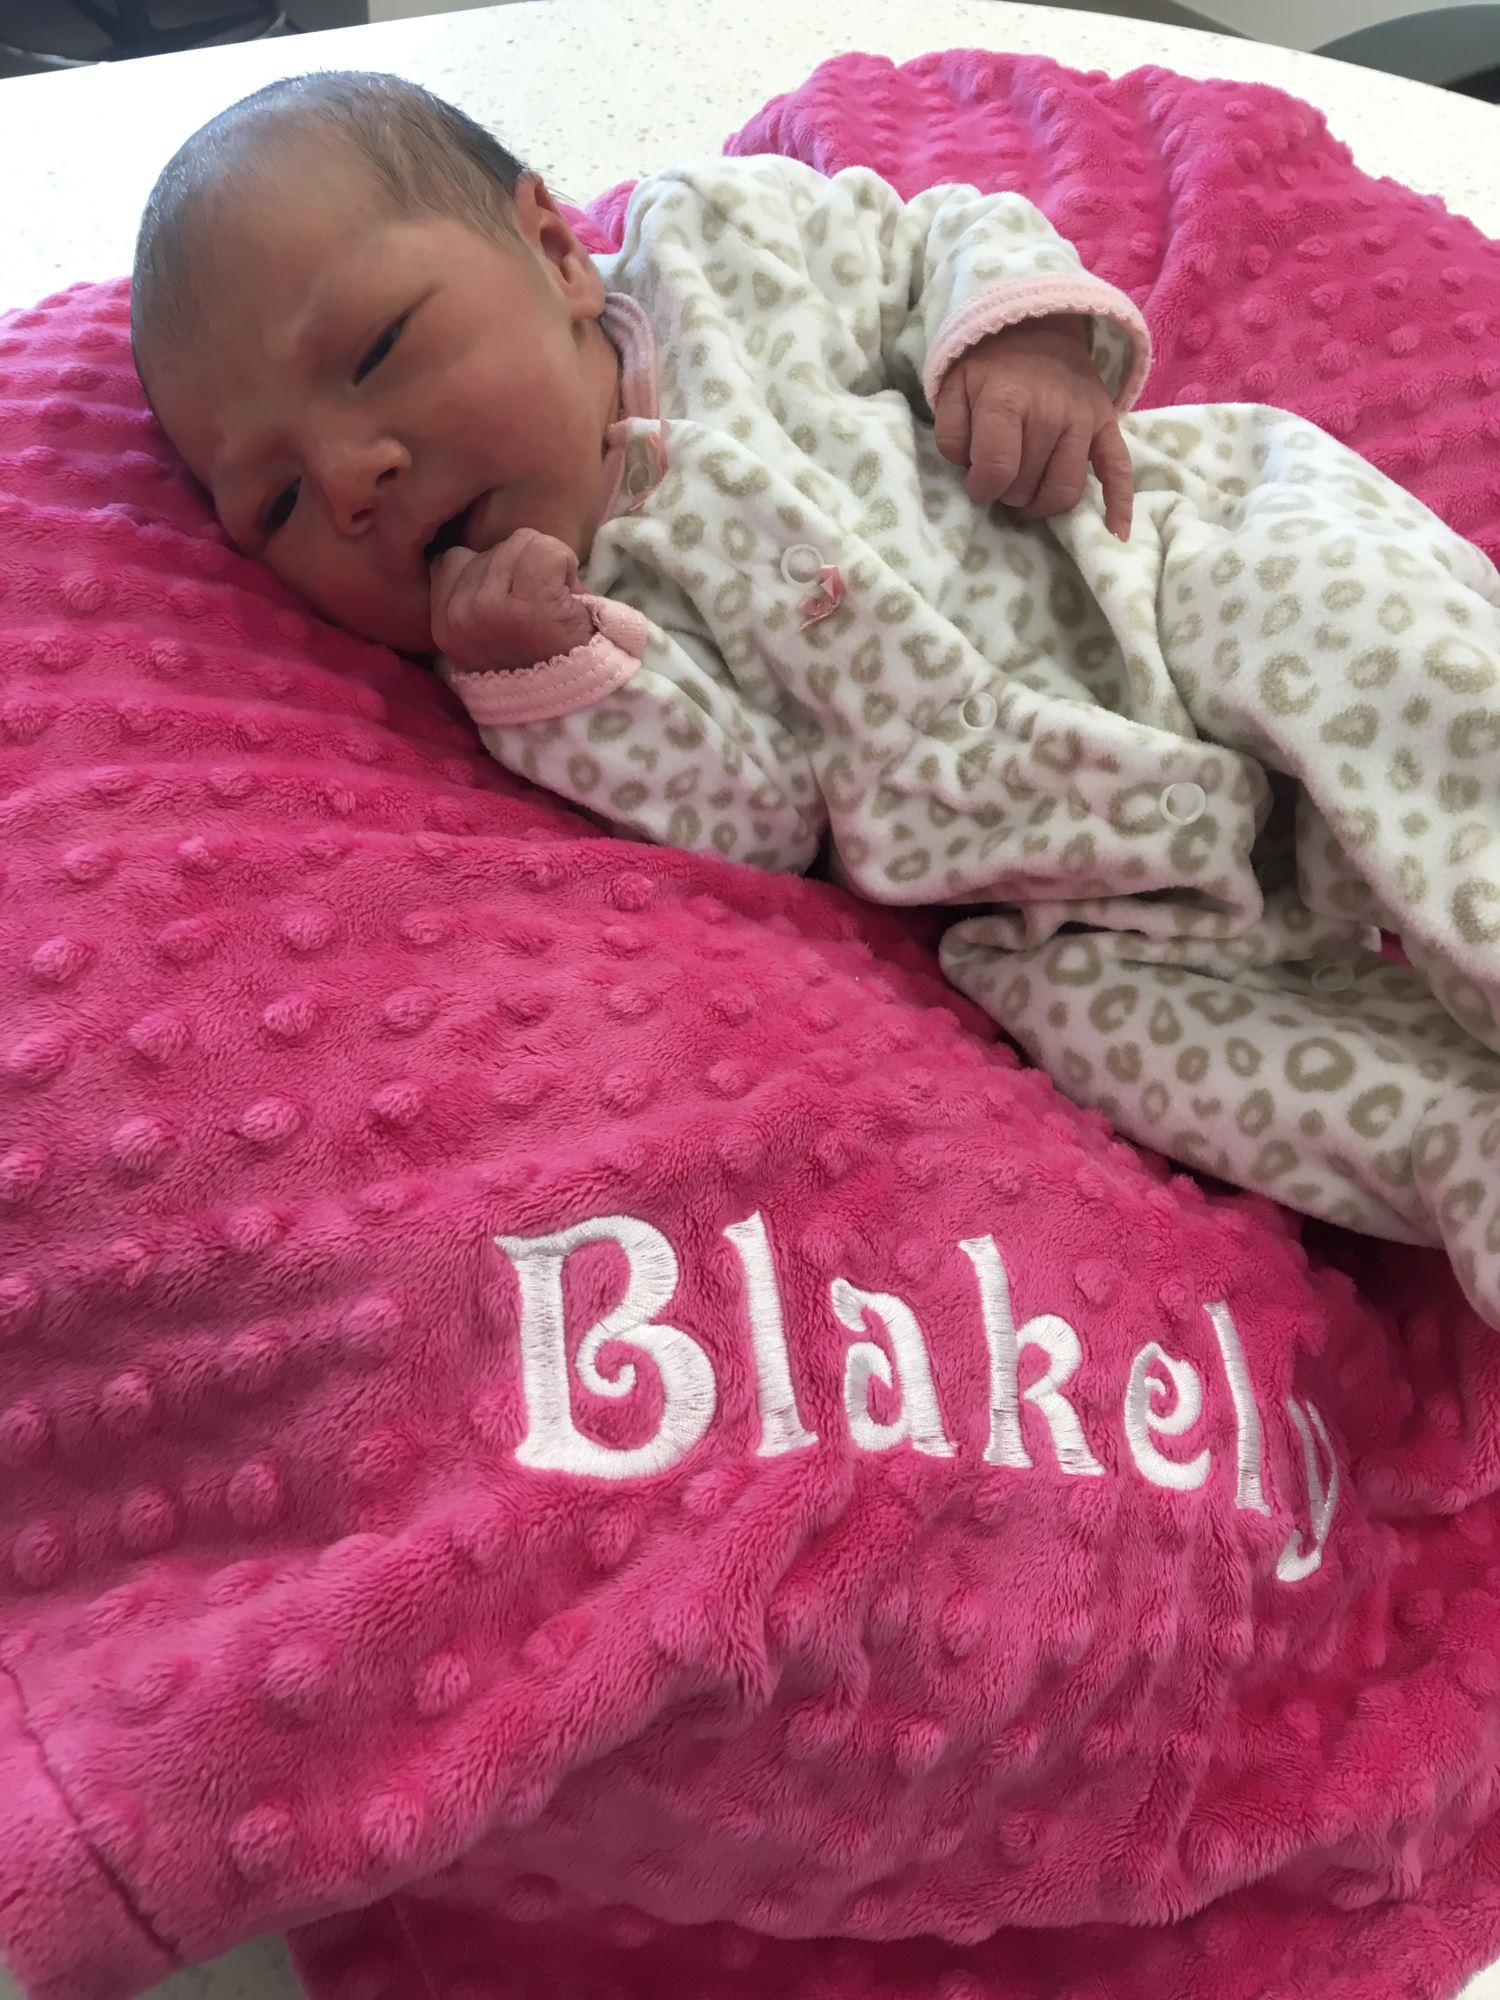 Blakely Jake-Louise